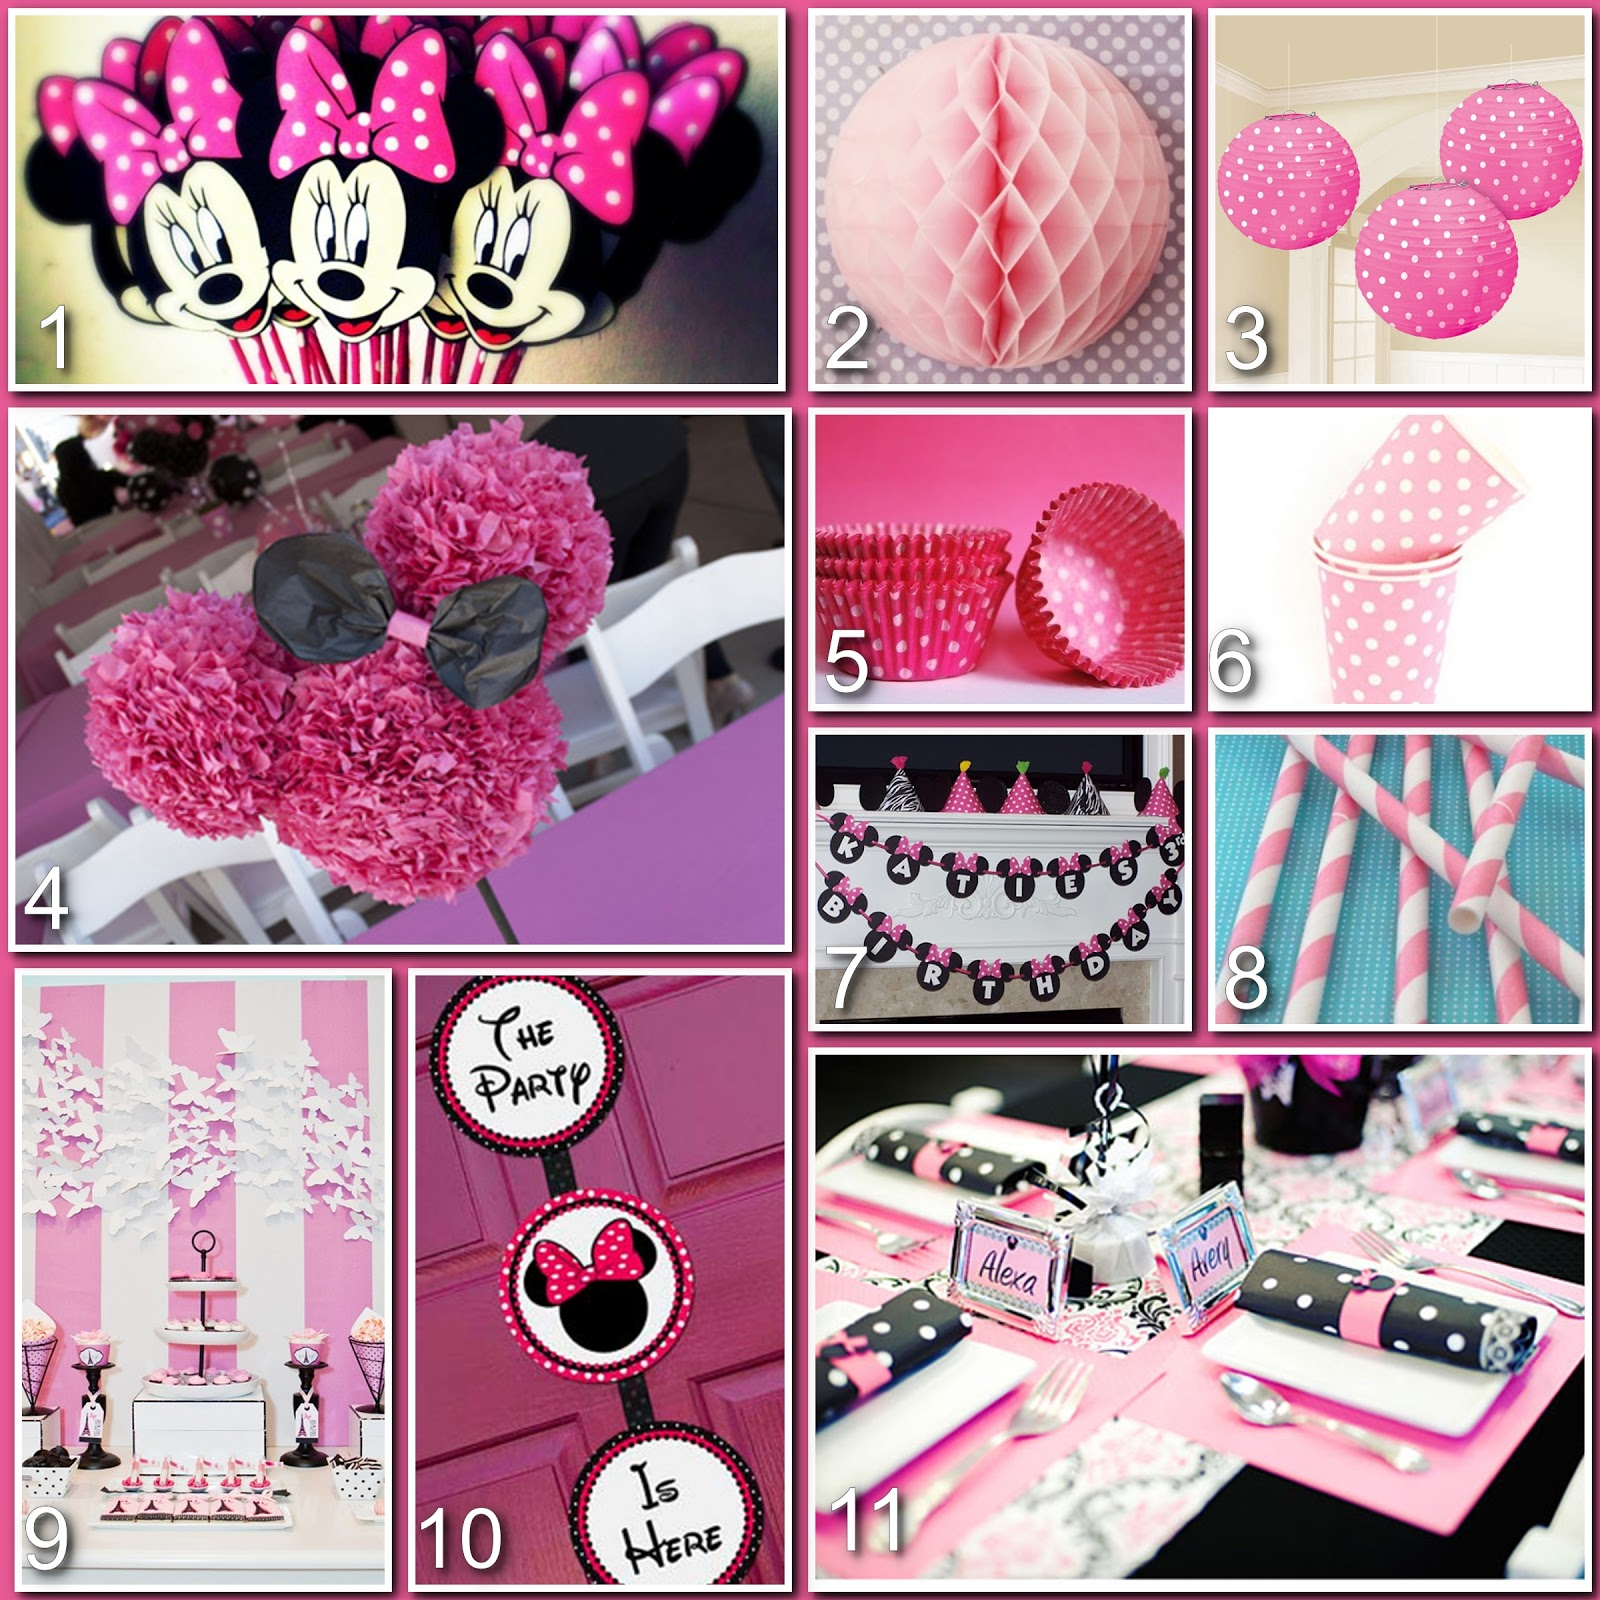 Picnic Party: Minnie Mouse Party Supplies